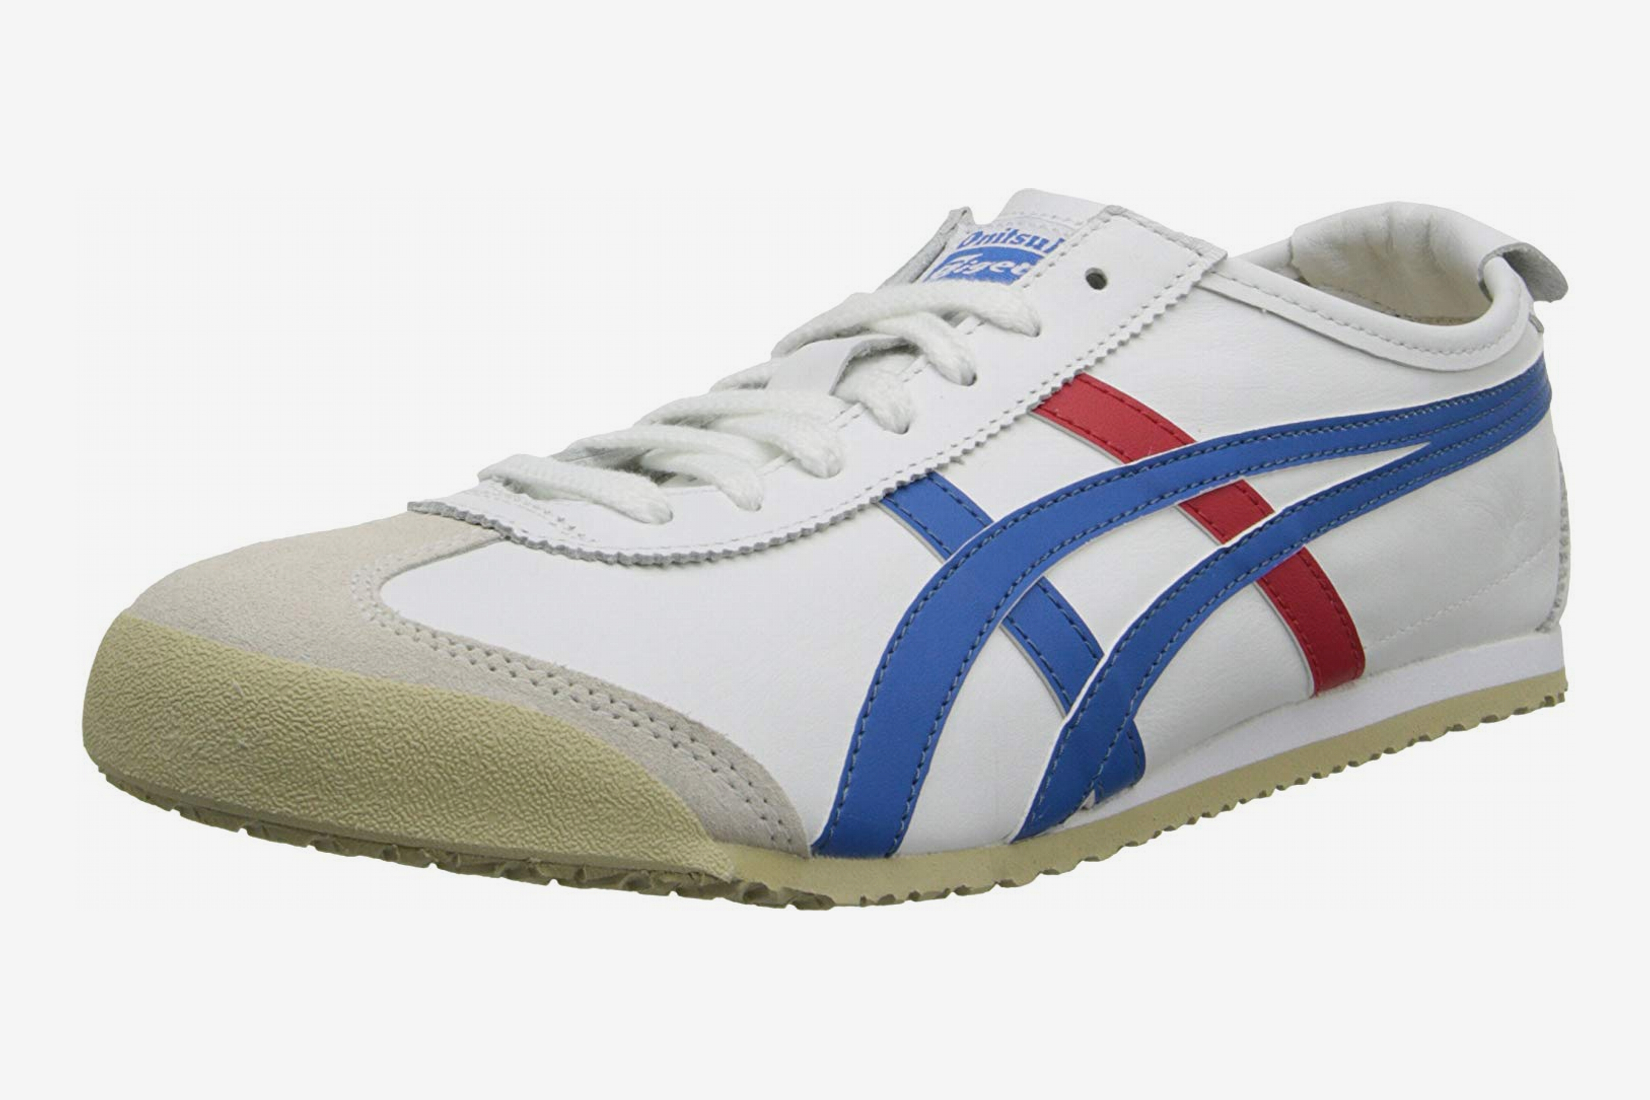 Onitsuka Tiger Unisex Mexico 66 Slip-on Shoes